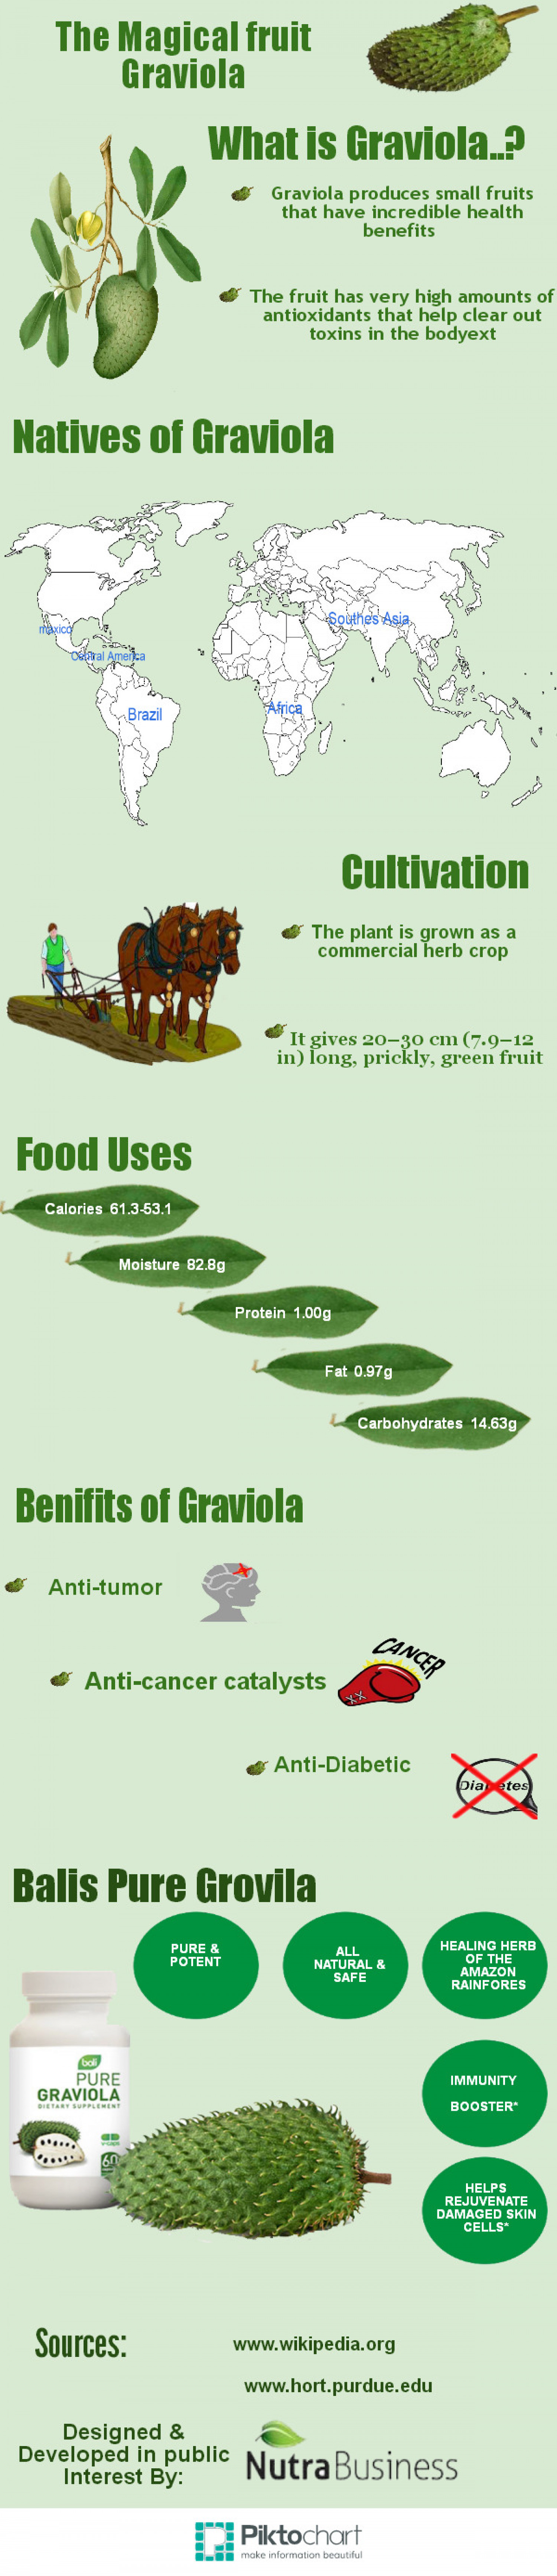 The Magical Fruit Graviola Infographic